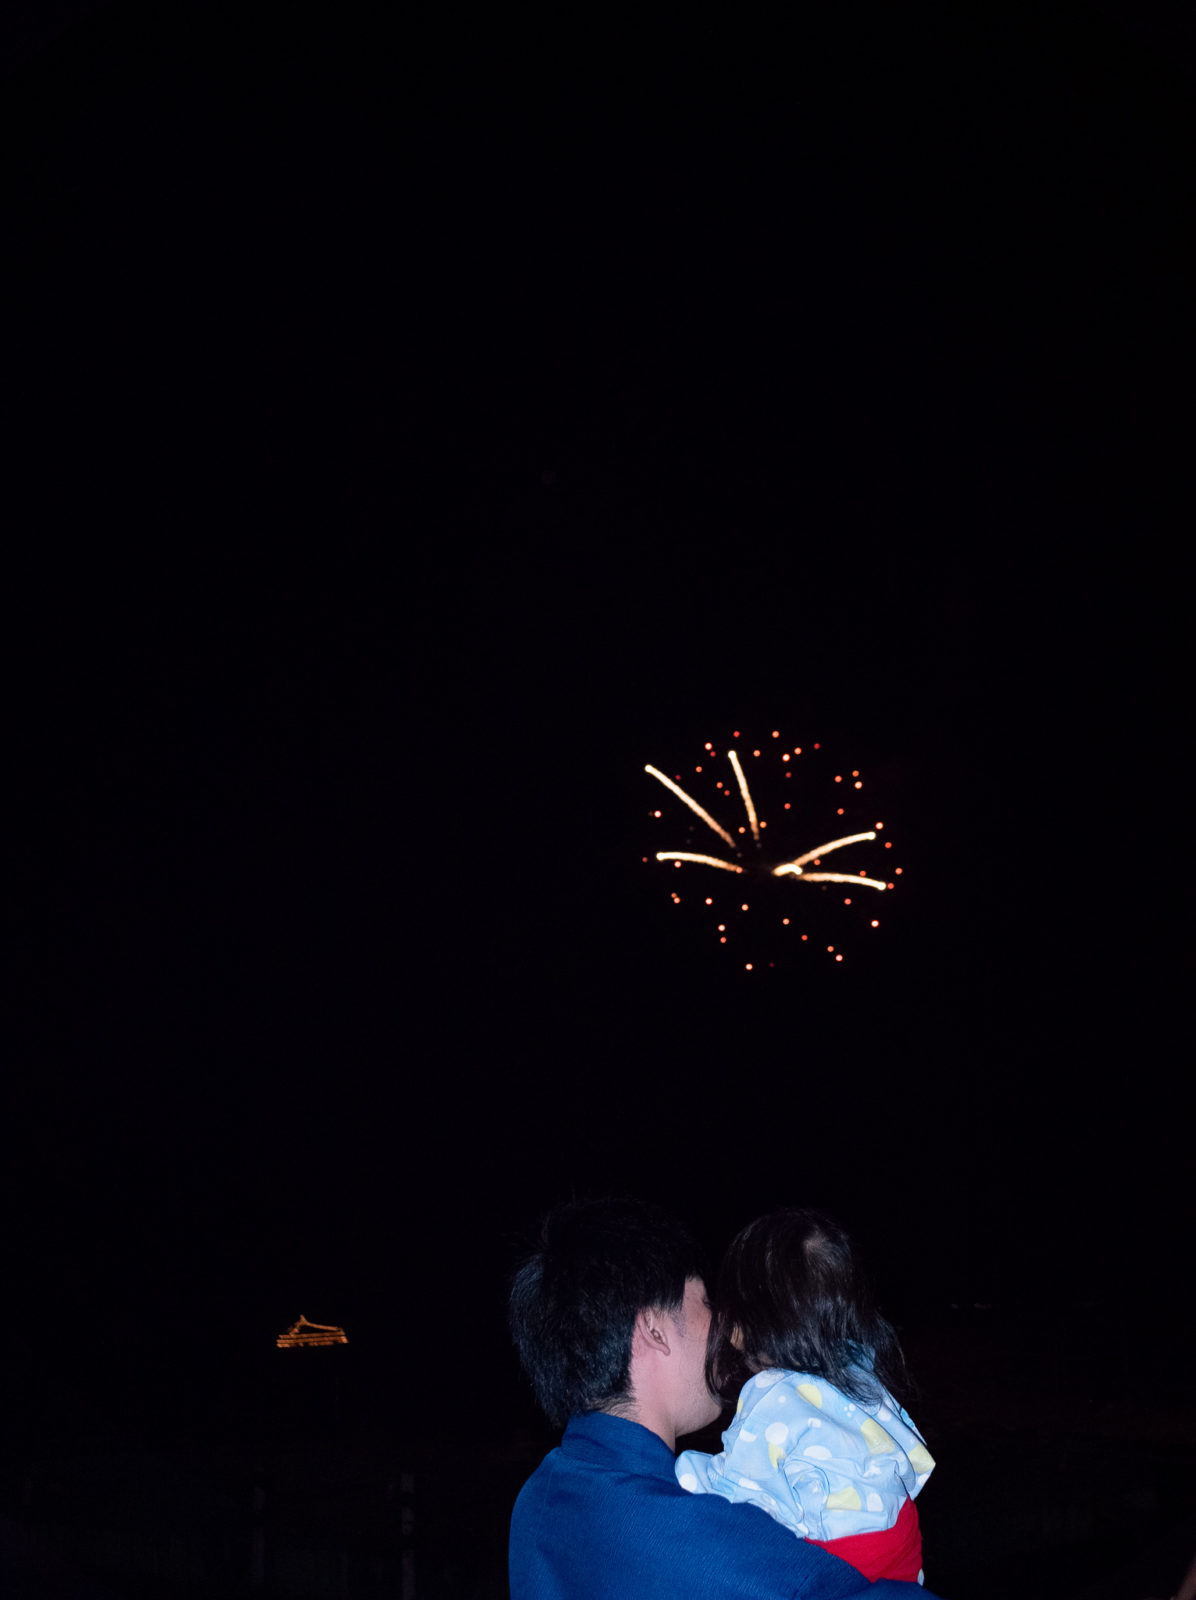 Wenkai Wang Look At Firework From The Other Side C41 Submission 53